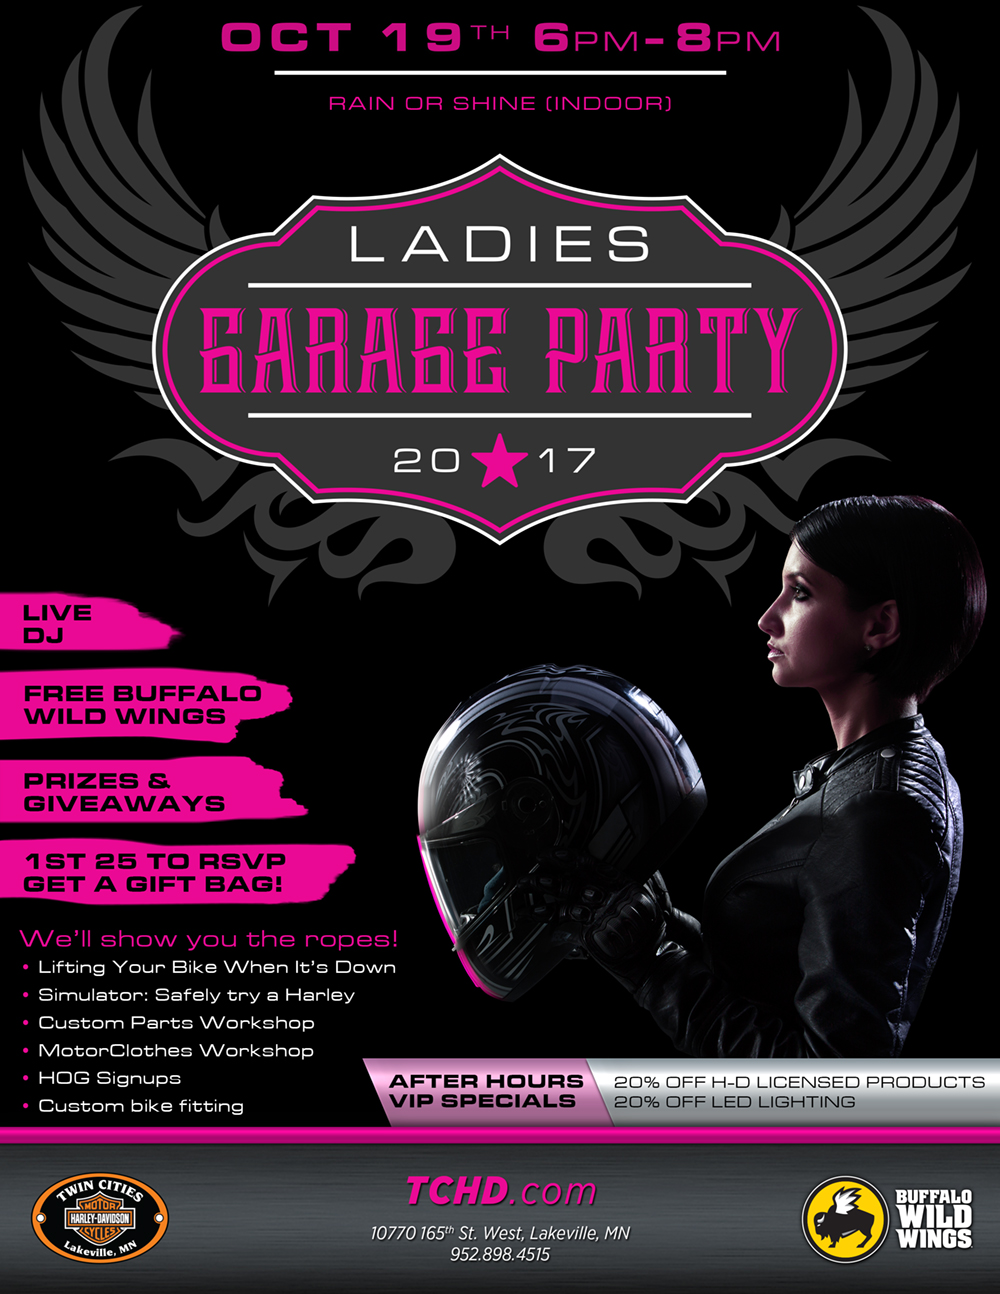 Ladies Garage Party - Twin Cities Lakeville Harley-Davidson